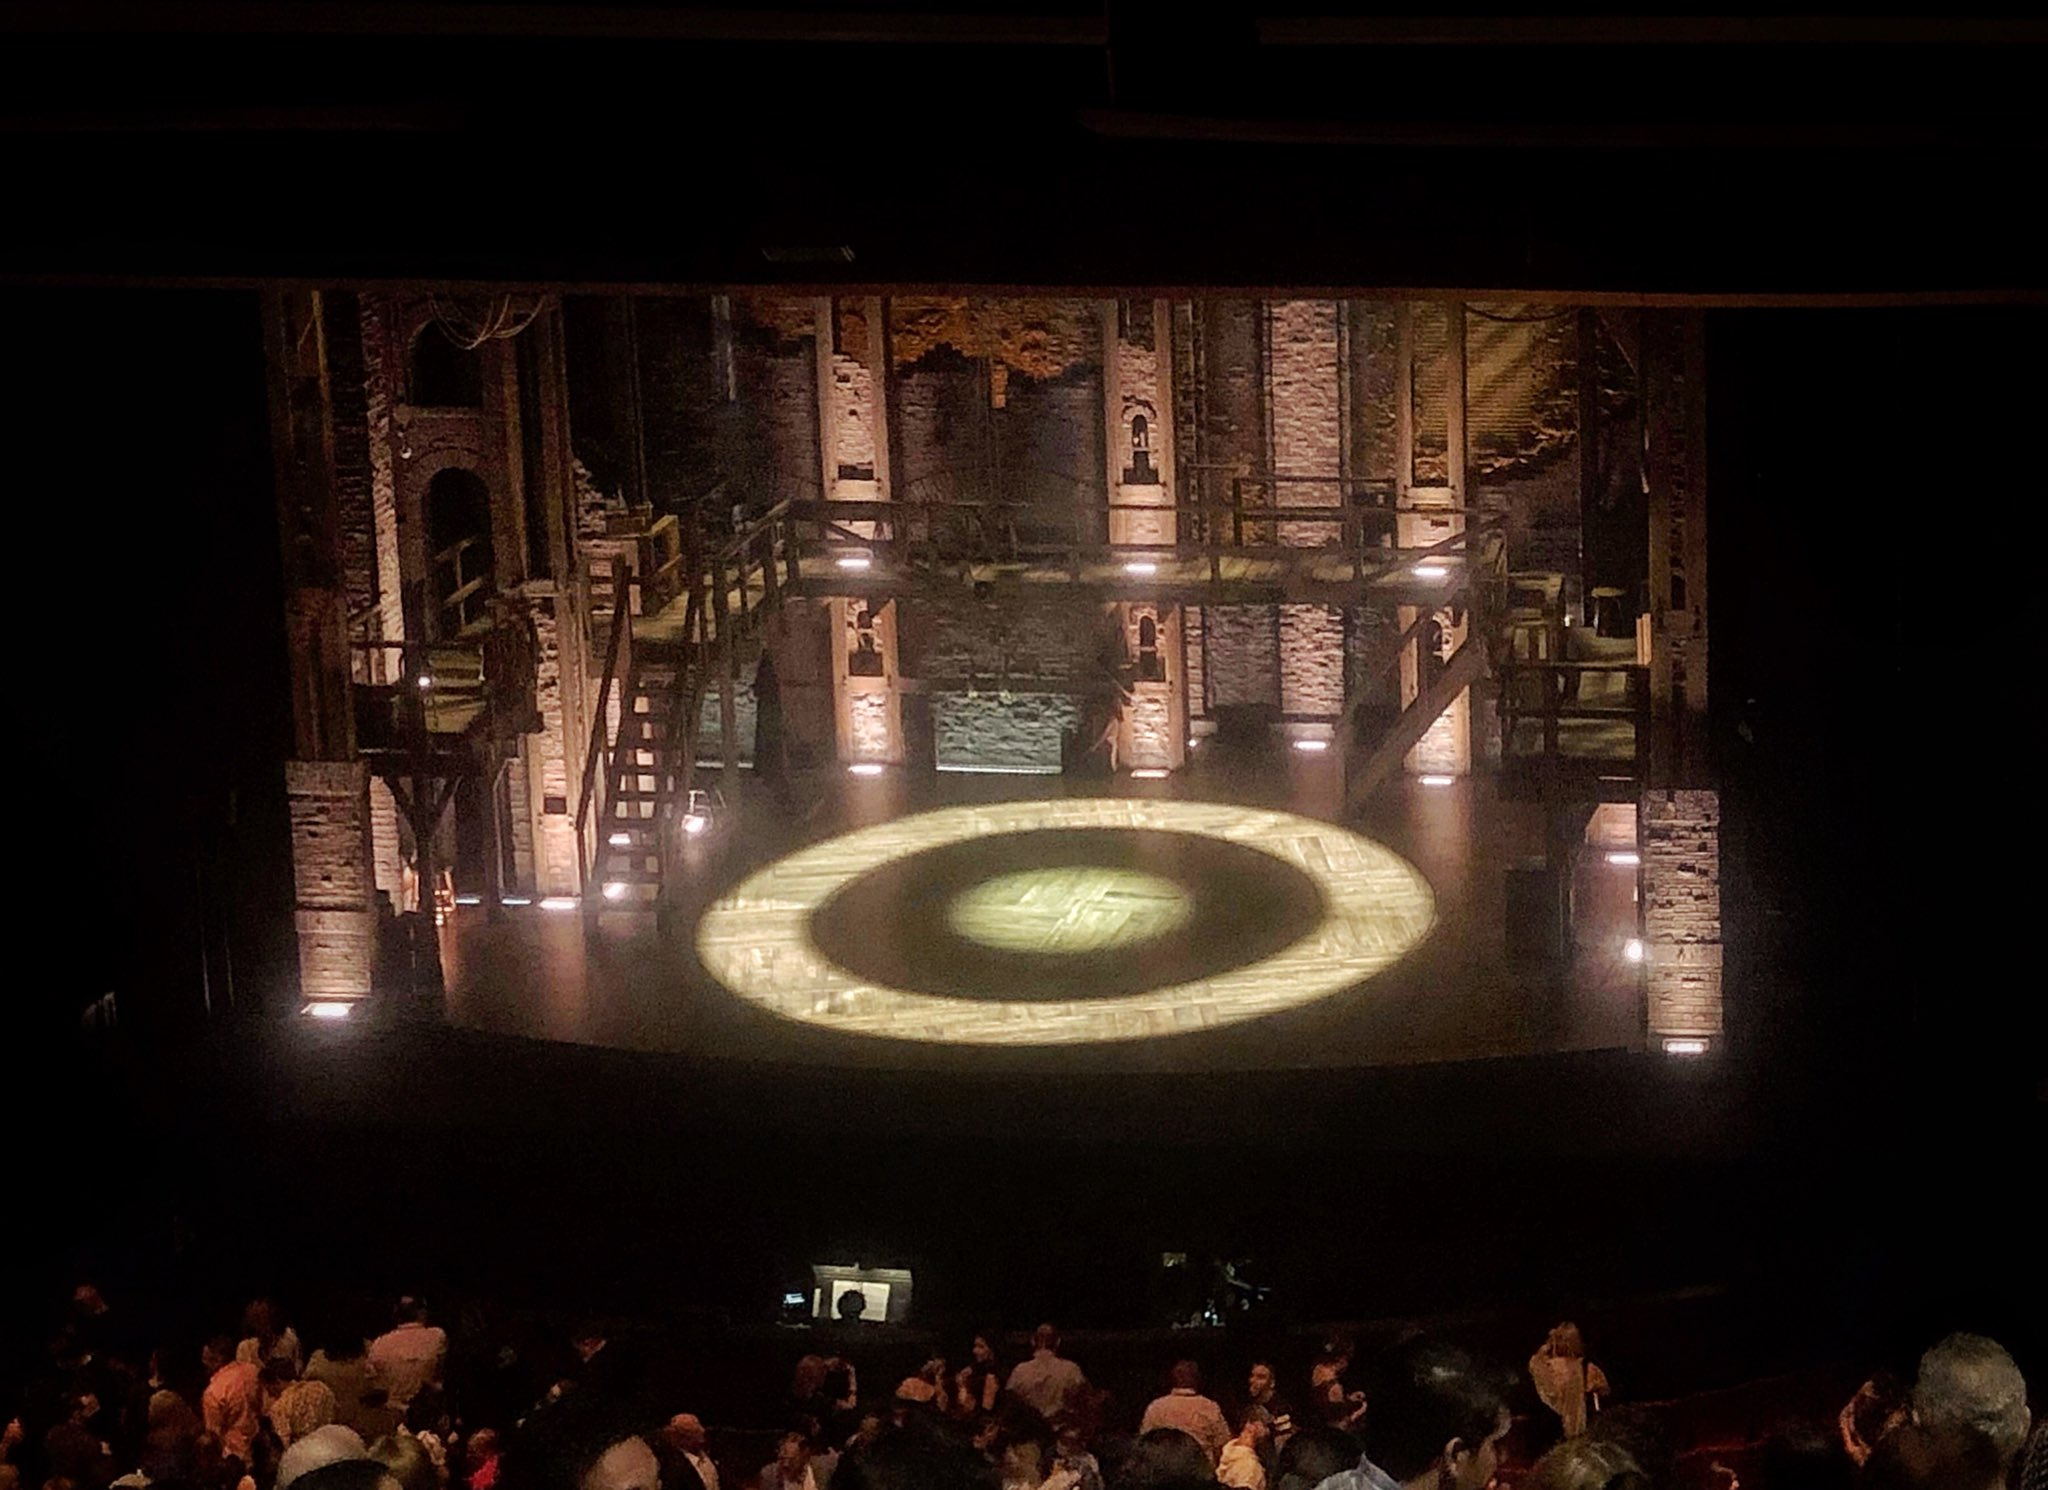 """""""In the room where it happened!"""" 🇵🇷 🎭 Hamilton is here in Puerto Rico… and I'm not giving away my shot to see @Lin_Manuel Miranda and a brilliant @HamiltonMusical cast perform the masterpiece on our island. #HamiltonPR opens tonight, but it represents far more than that. THREAD https://t.co/nD4qtZUJ74"""